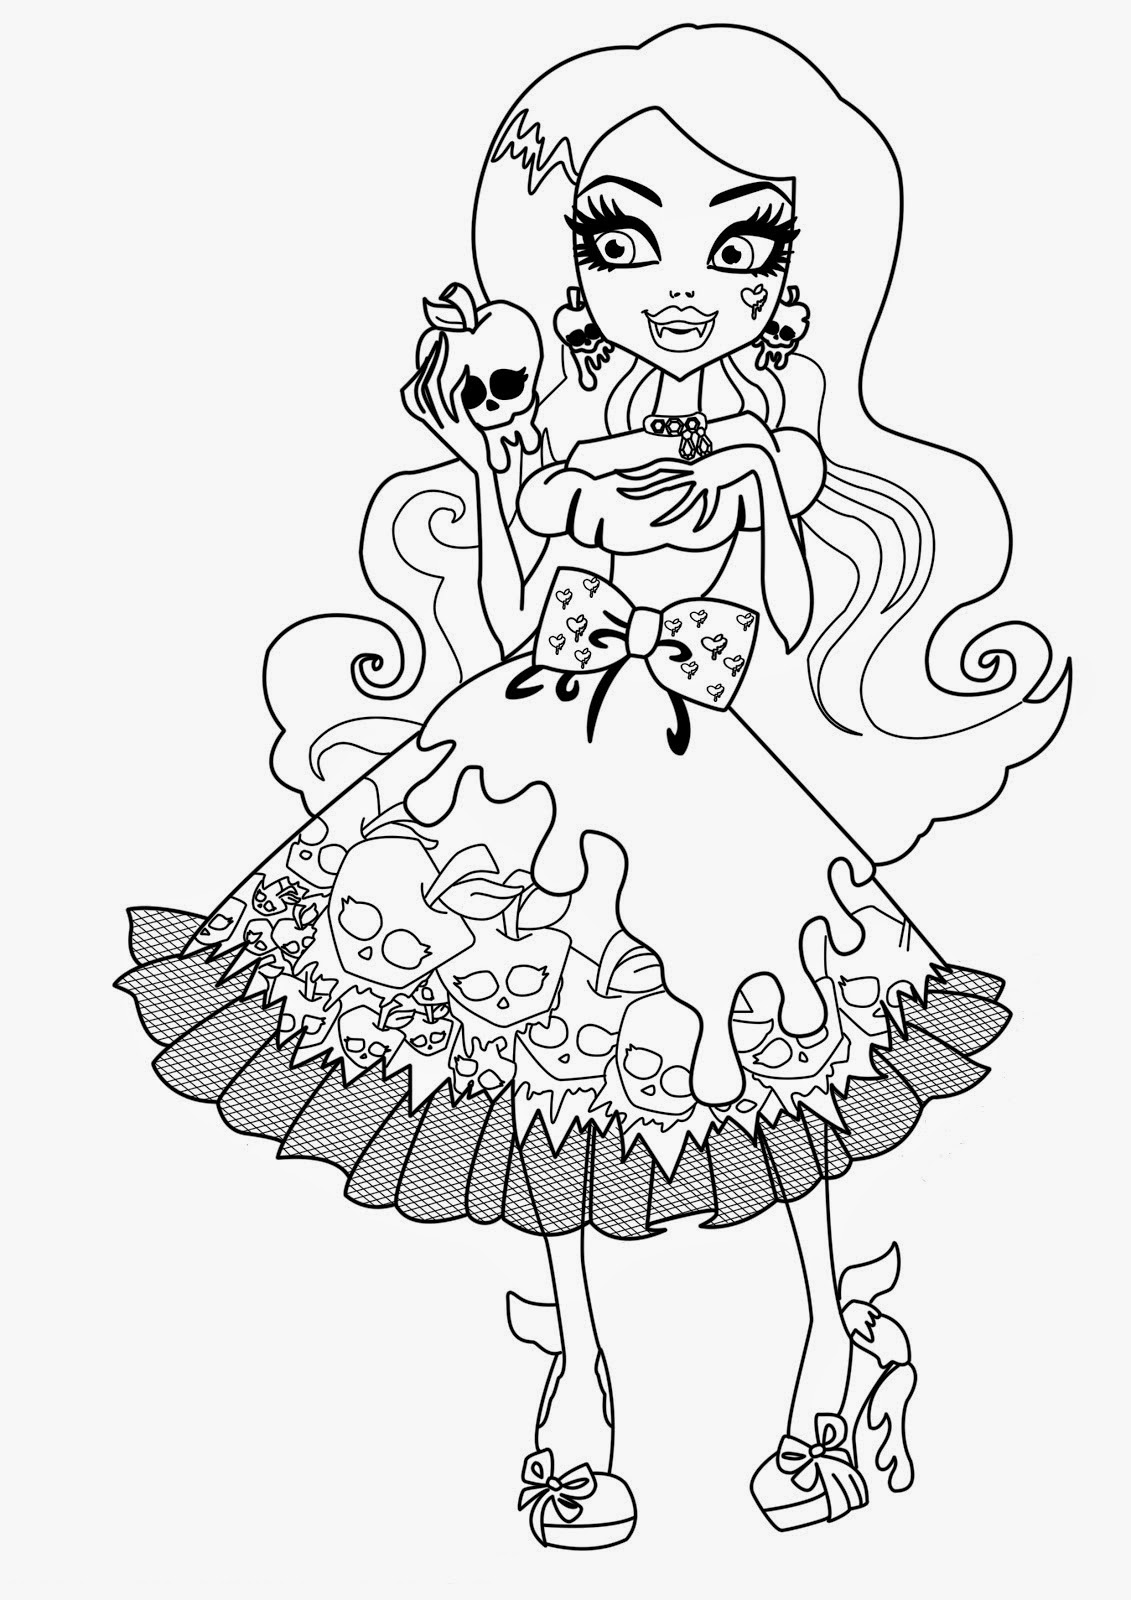 monster high coloring pages to print for free print monster high coloring pages for free or download monster for coloring free to pages print high